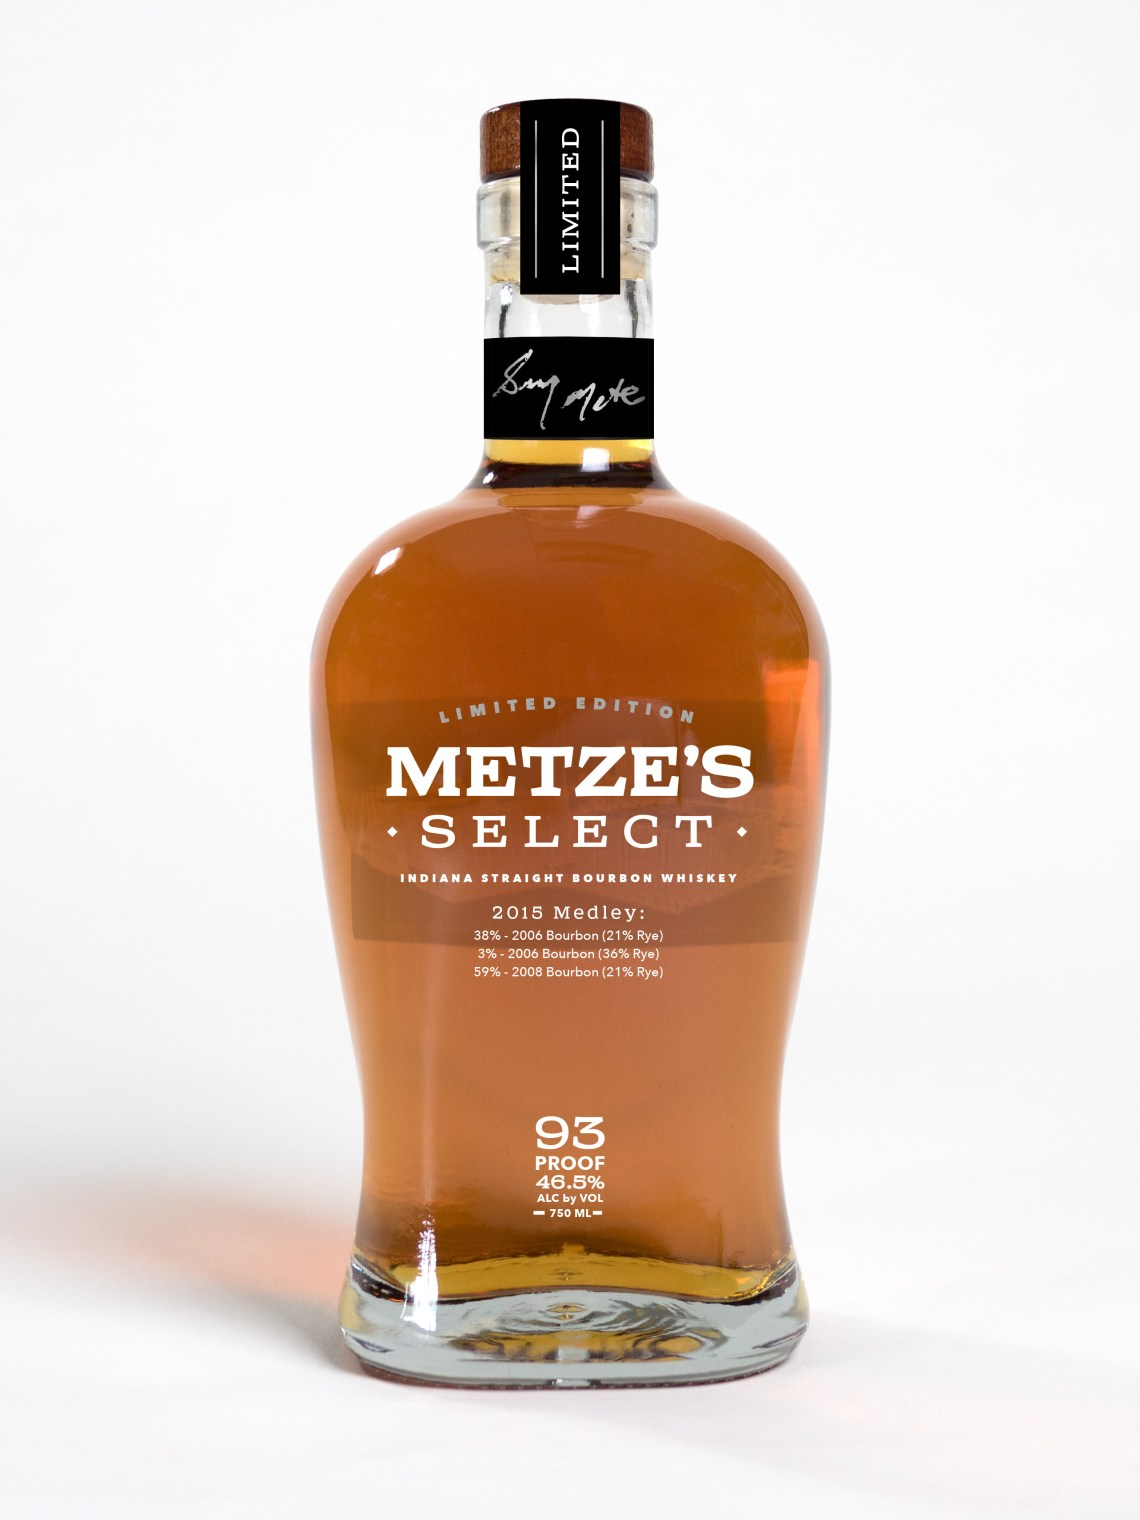 Metze's Select Indiana Straight Bourbon Whiskey